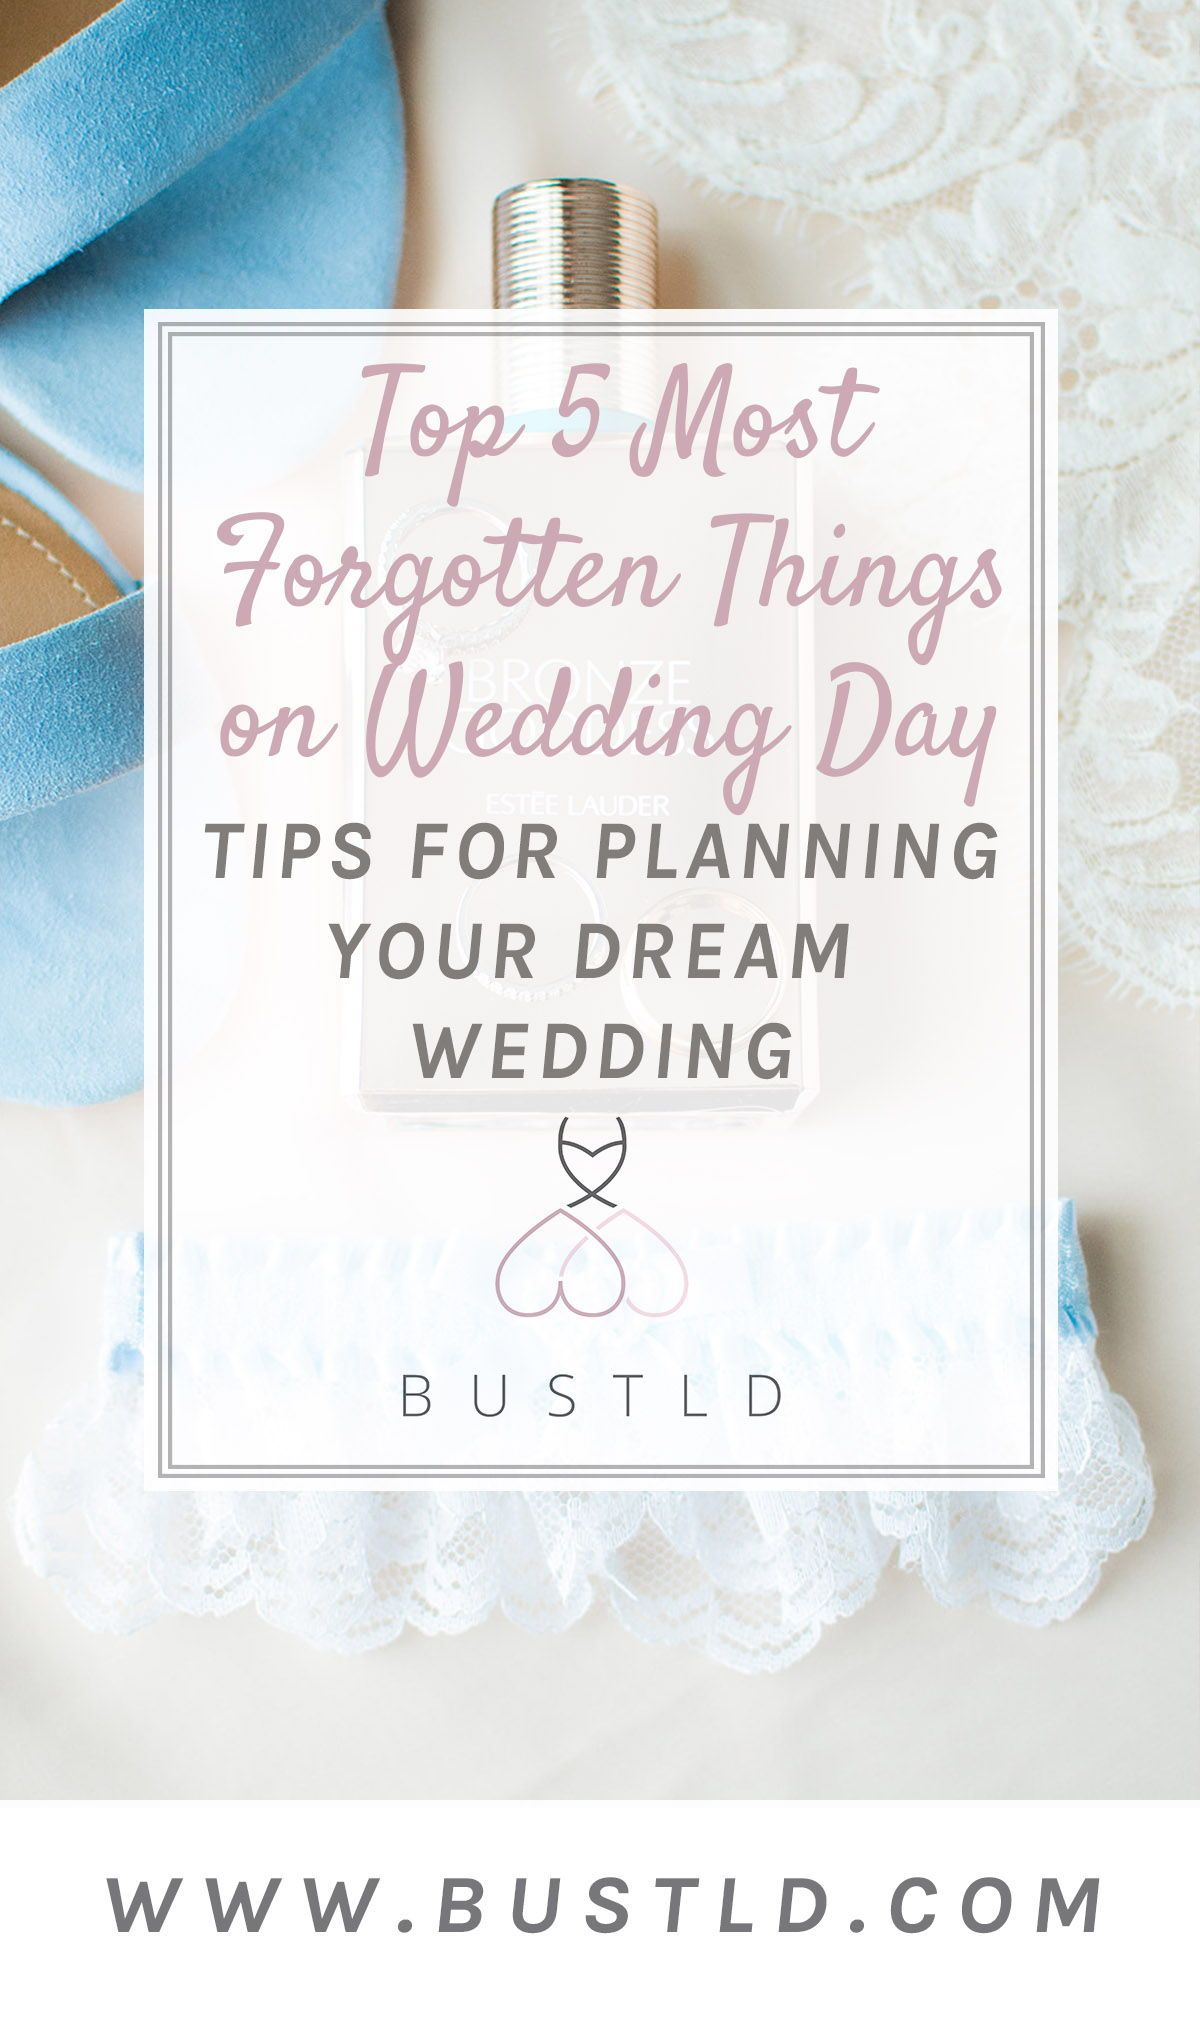 Top 5 Most Forgotten Things On Wedding Morning Bustld Planning Your Wedding Just Got Easier Morning Wedding Wedding Planning Wedding Day Tips